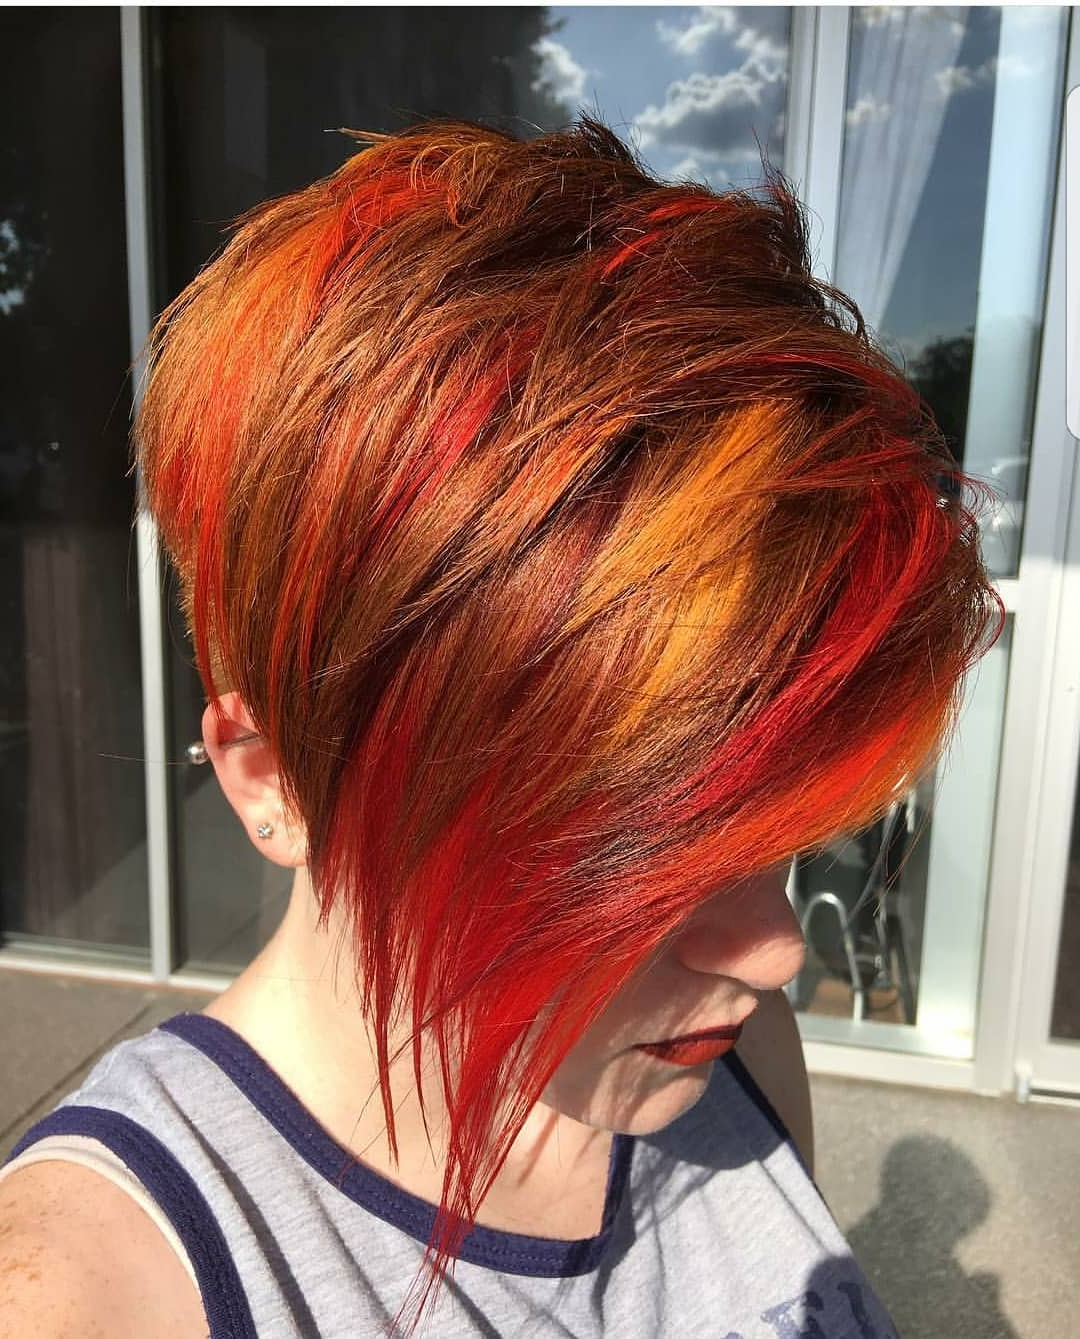 10 Beautiful Asymmetrical Short Pixie Haircuts & Hairstyles, Women In Bright Red Short Hairstyles (View 8 of 25)